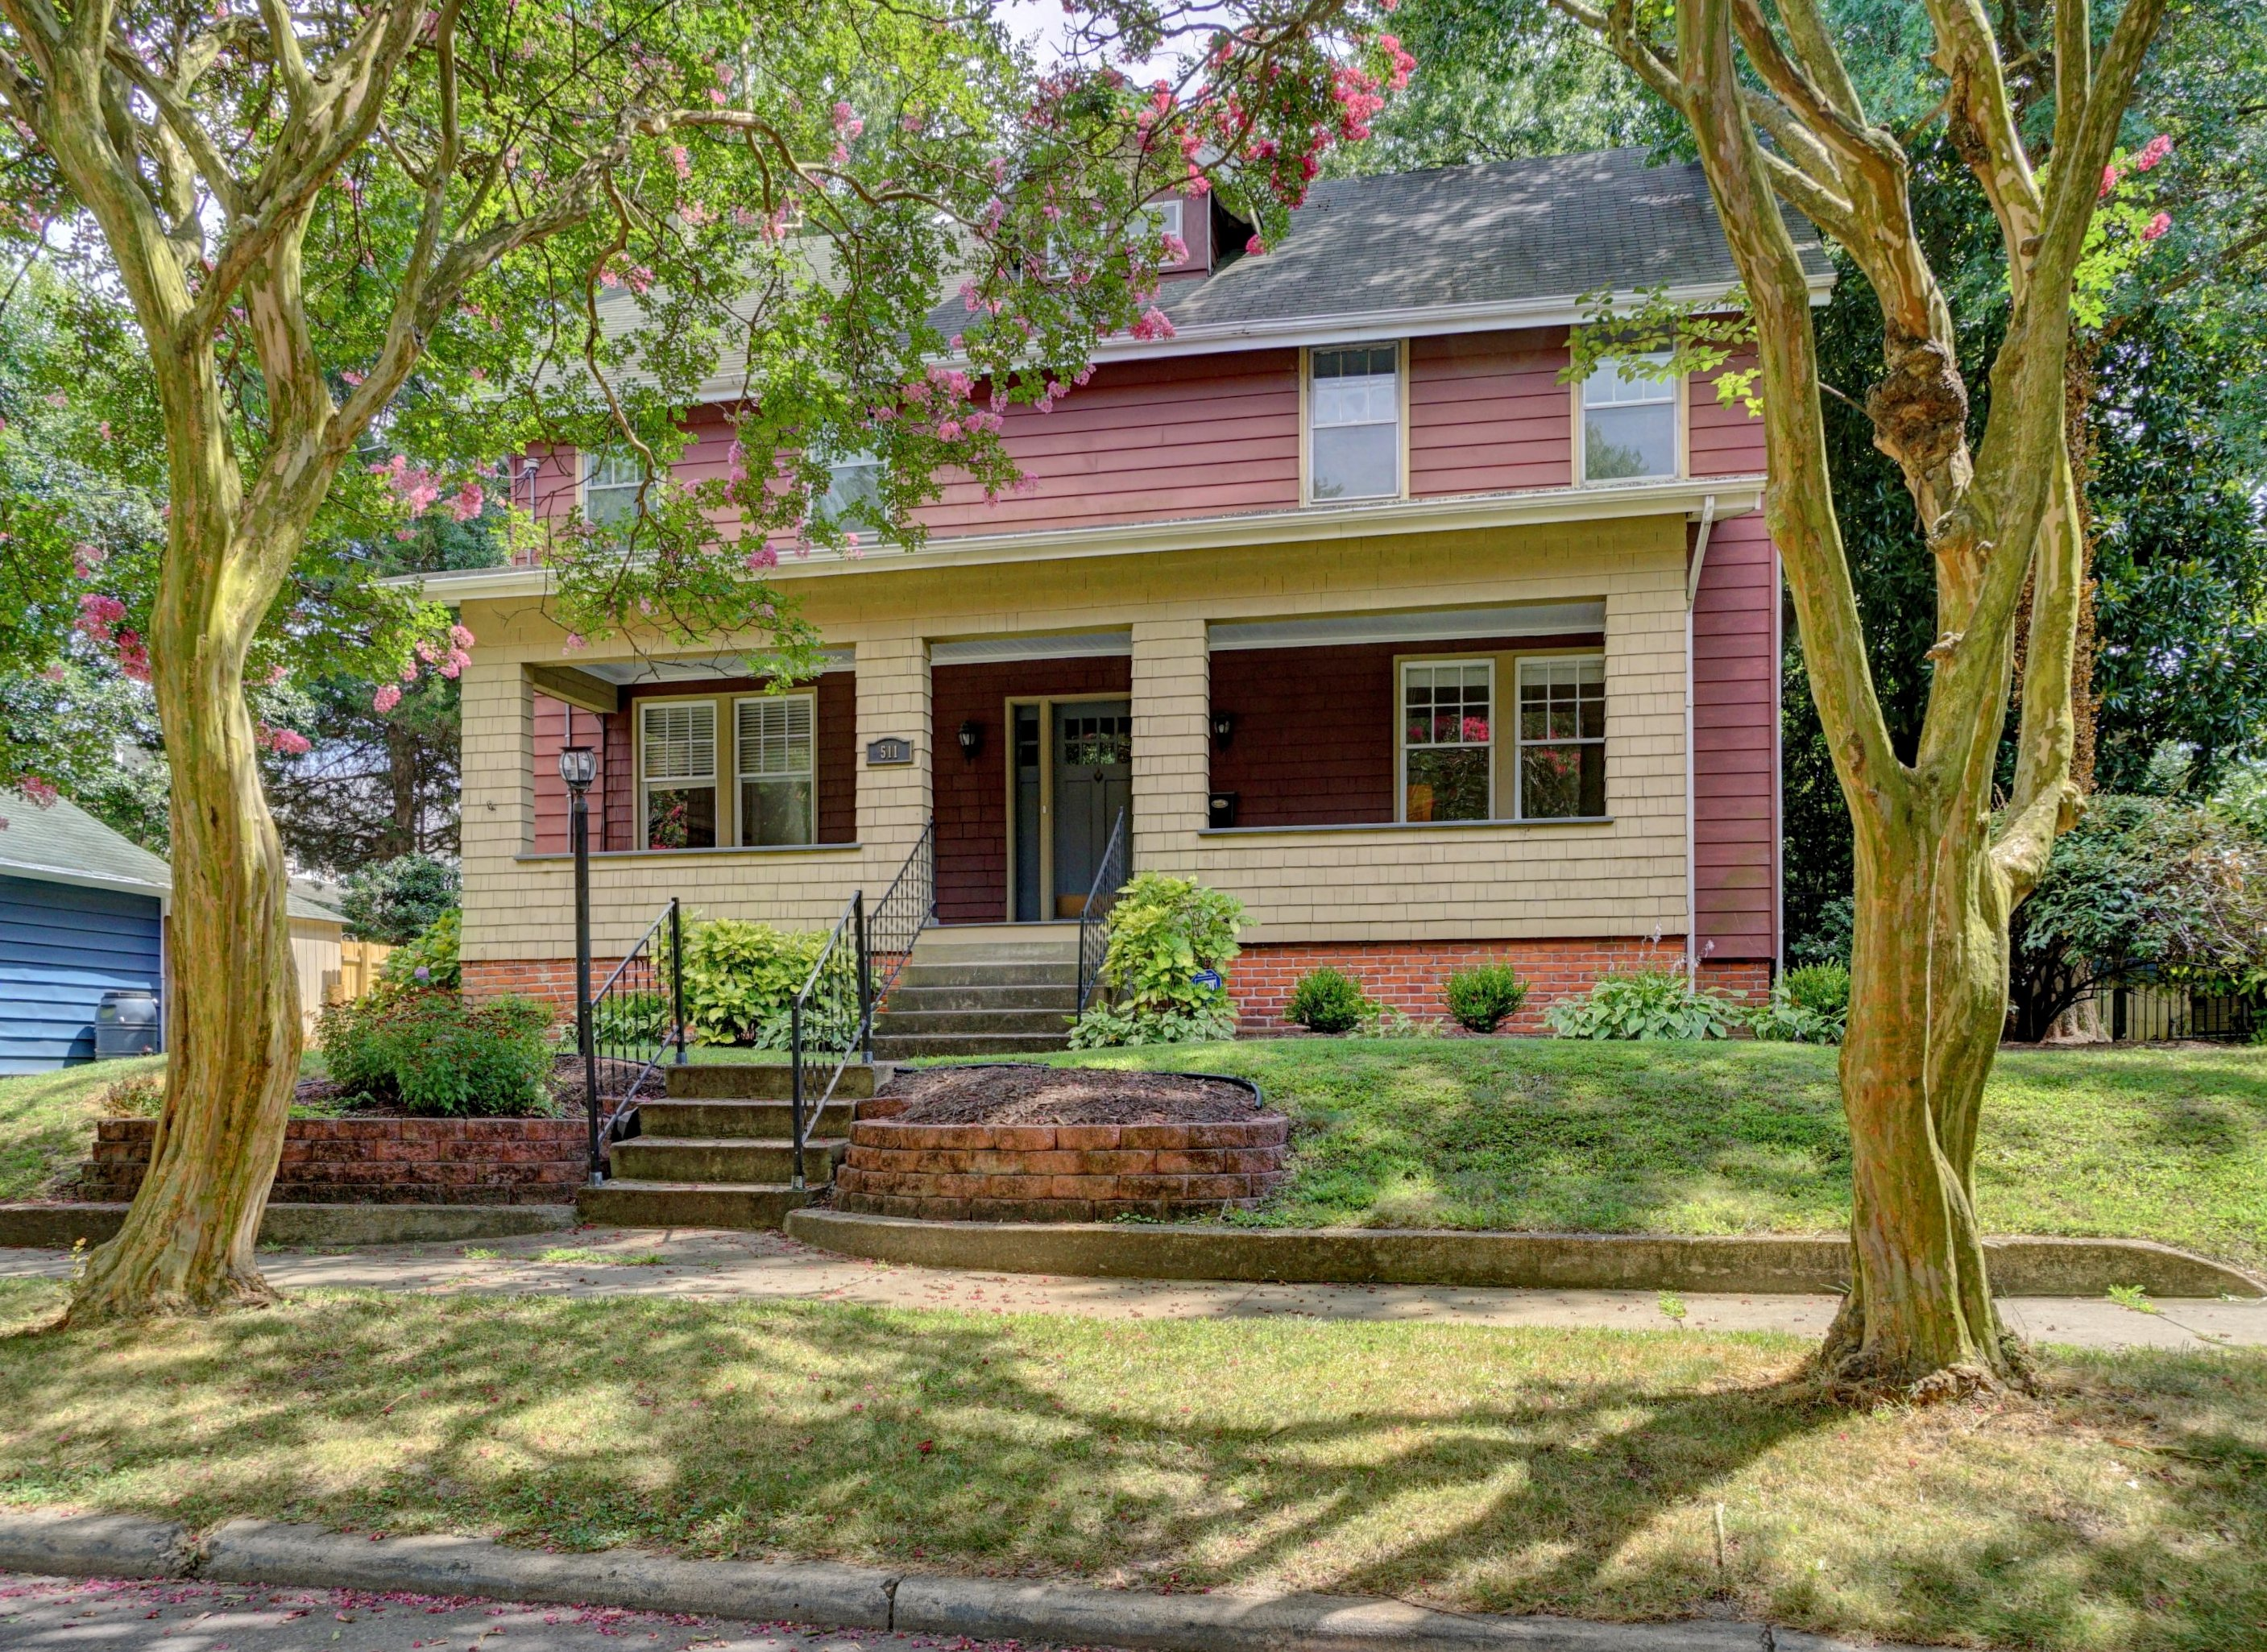 511 Massachusetts Avenue: Sold!